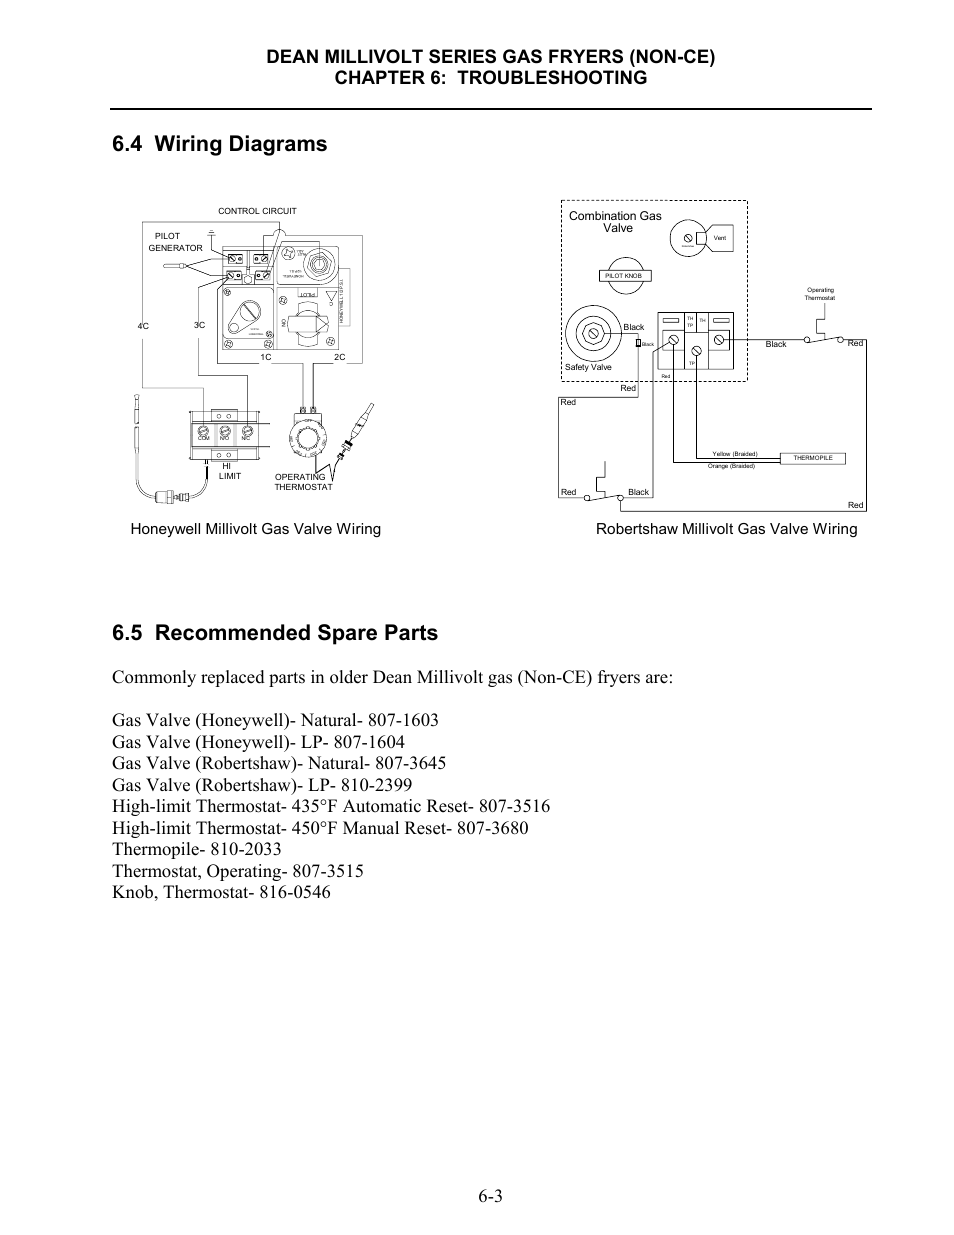 medium resolution of 4 wiring diagrams 5 recommended spare parts honeywell millivolt robertshaw gas valves wiring diagram control